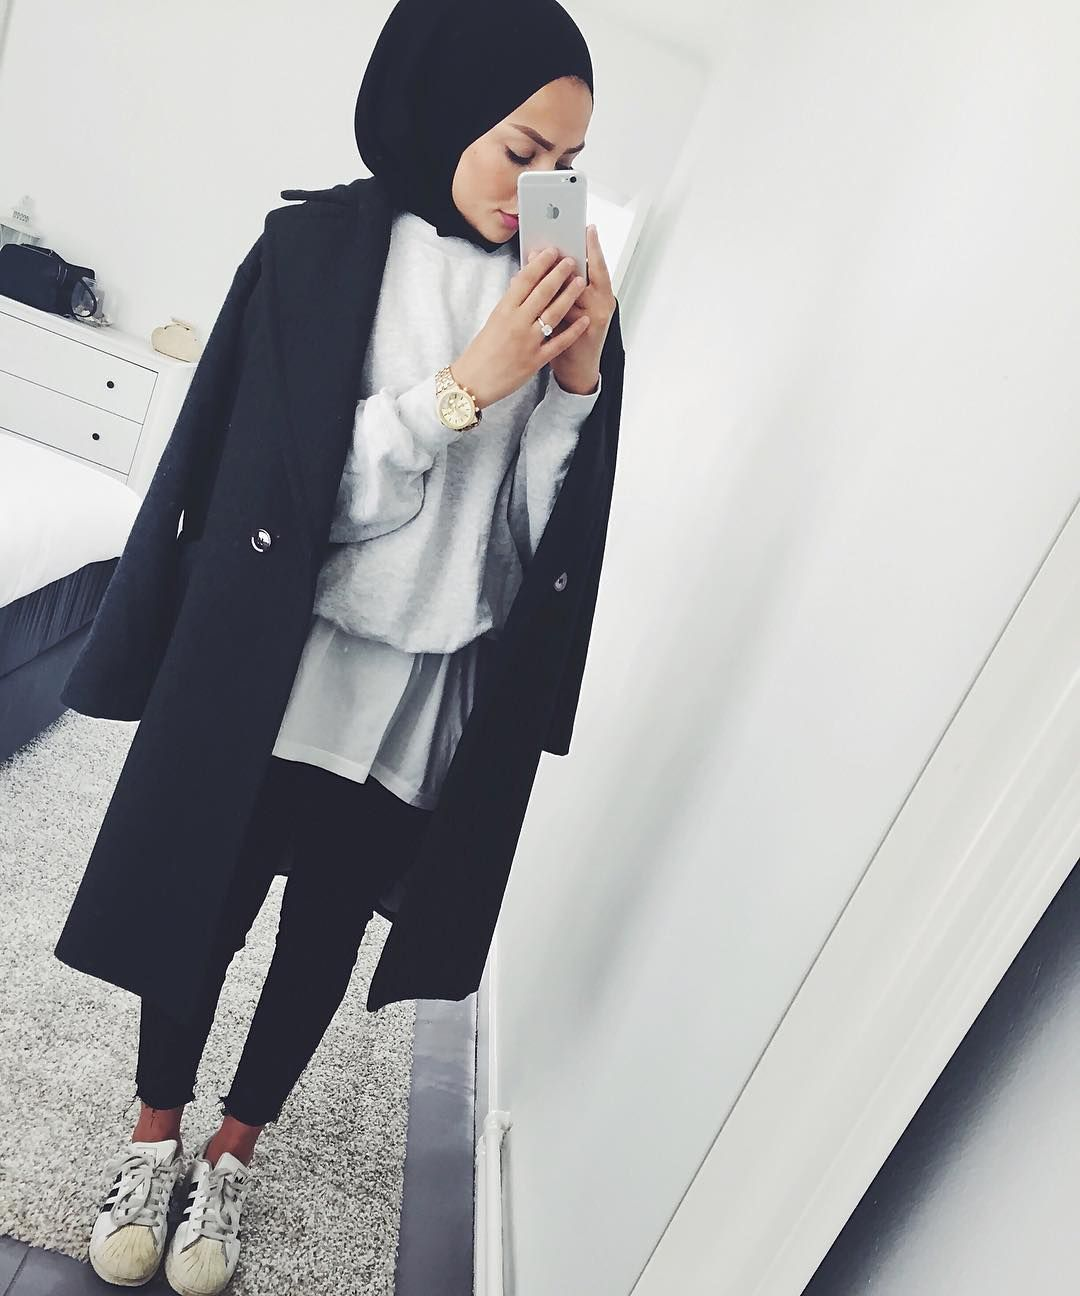 Pinterest @eighthhorcruxx. Casual Outfit | Hijab Fashion | Pinterest | Hijab Outfit Hijabs And ...